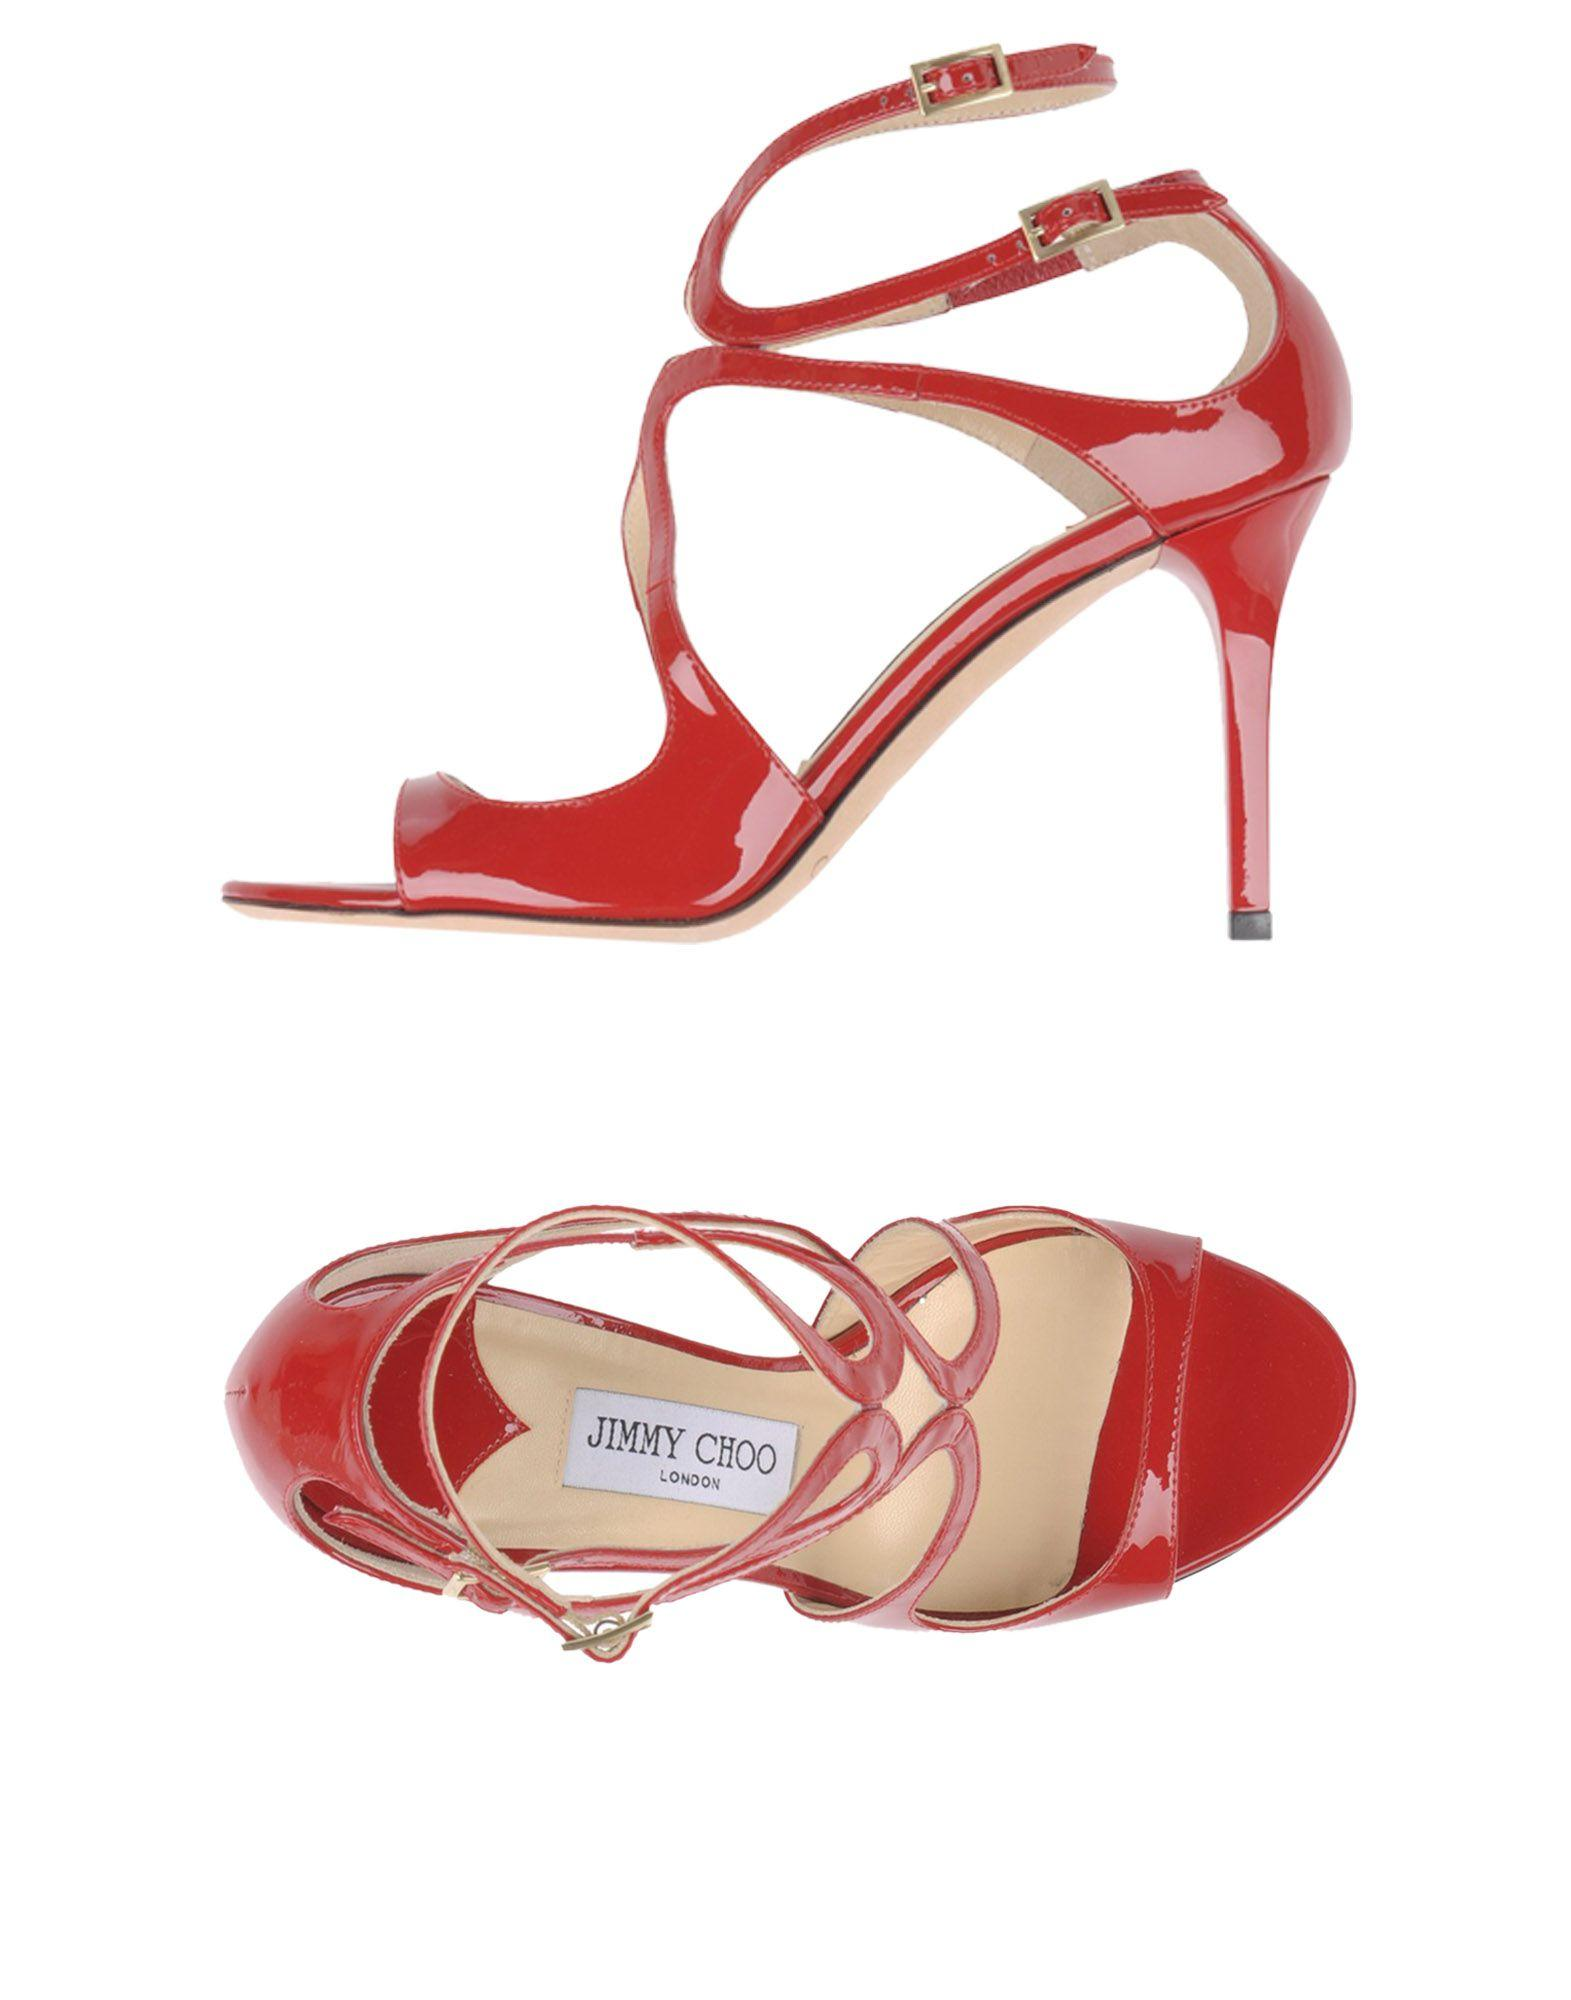 4ee19fc97d1 Jimmy Choo Lance Red Patent Leather Strappy Sandals